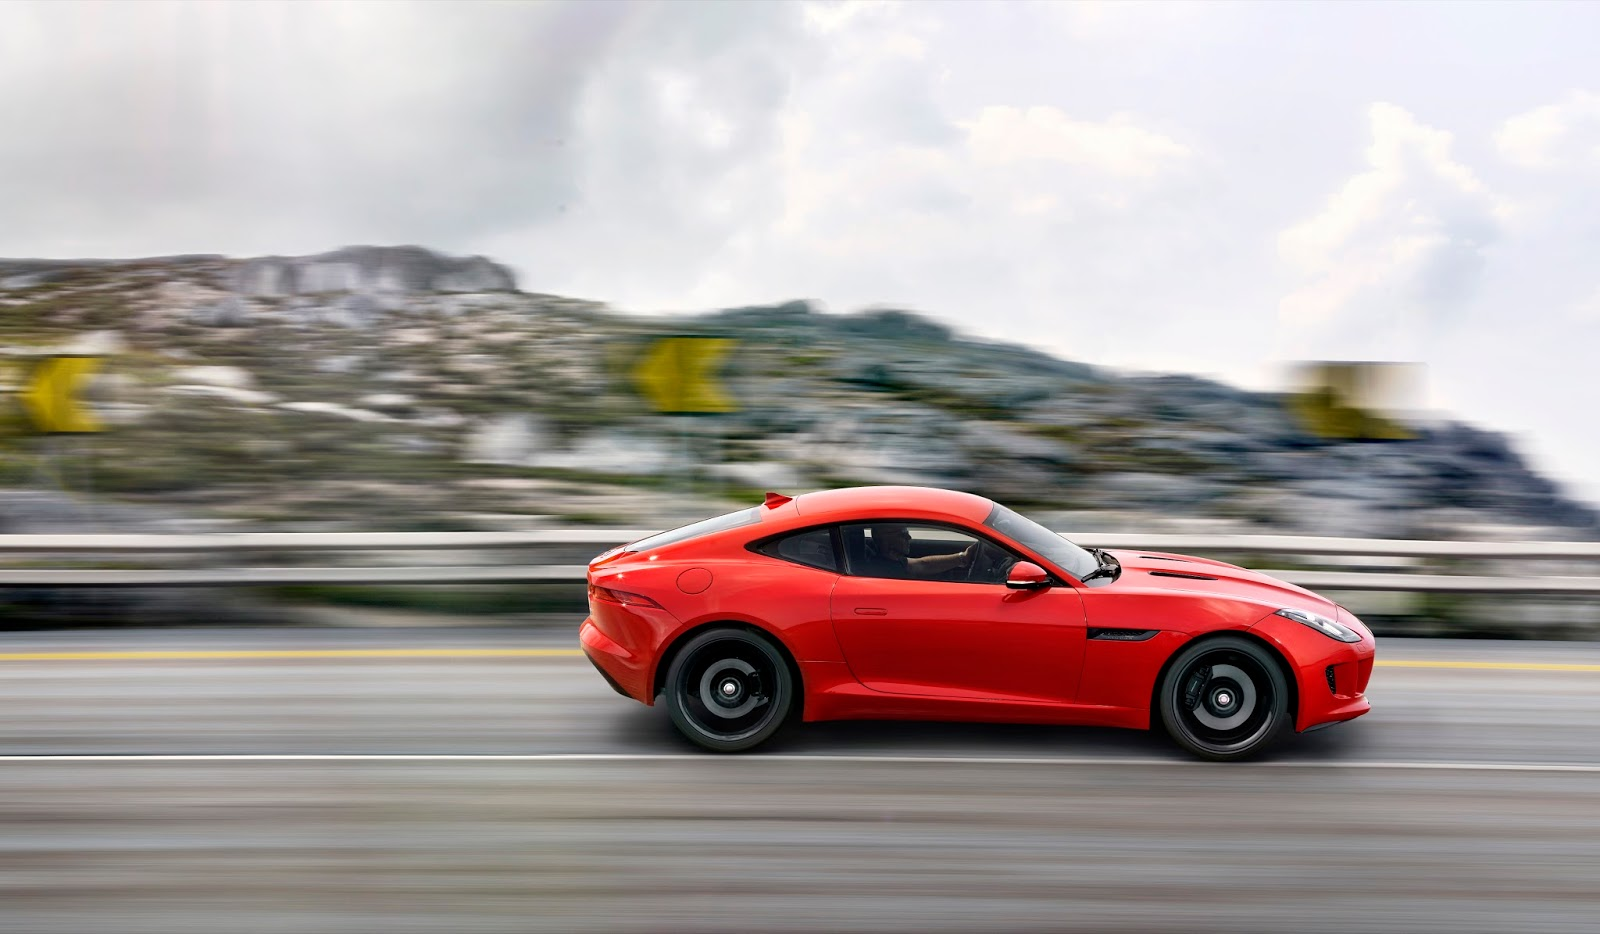 jaguar is selling f-types, not much else | gcbc